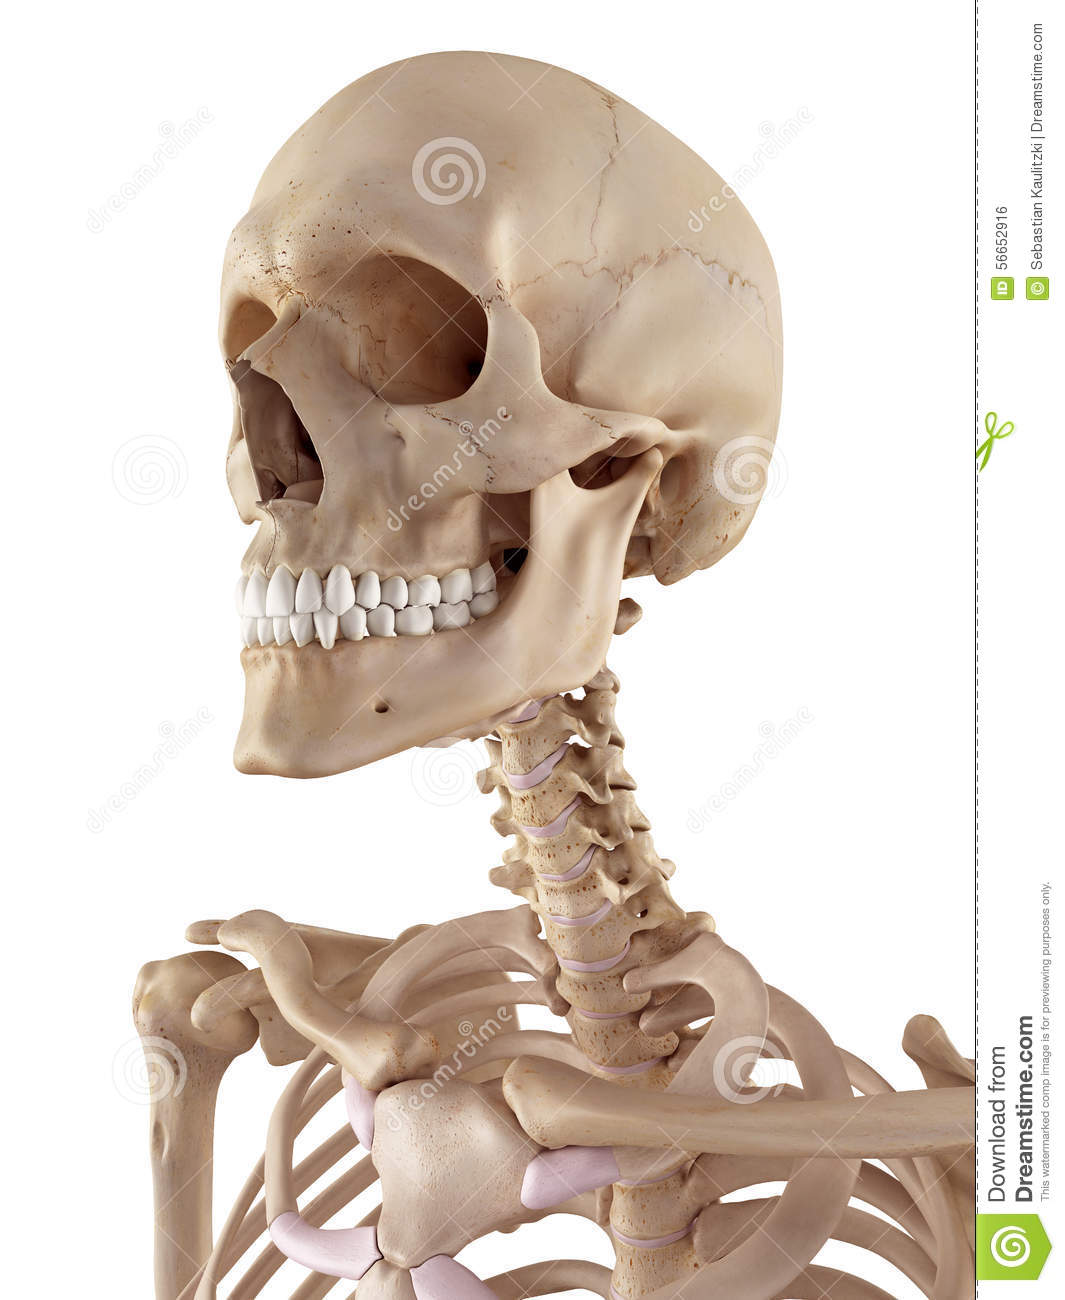 The Human Skull And Neck Stock Illustration - Image: 56652916